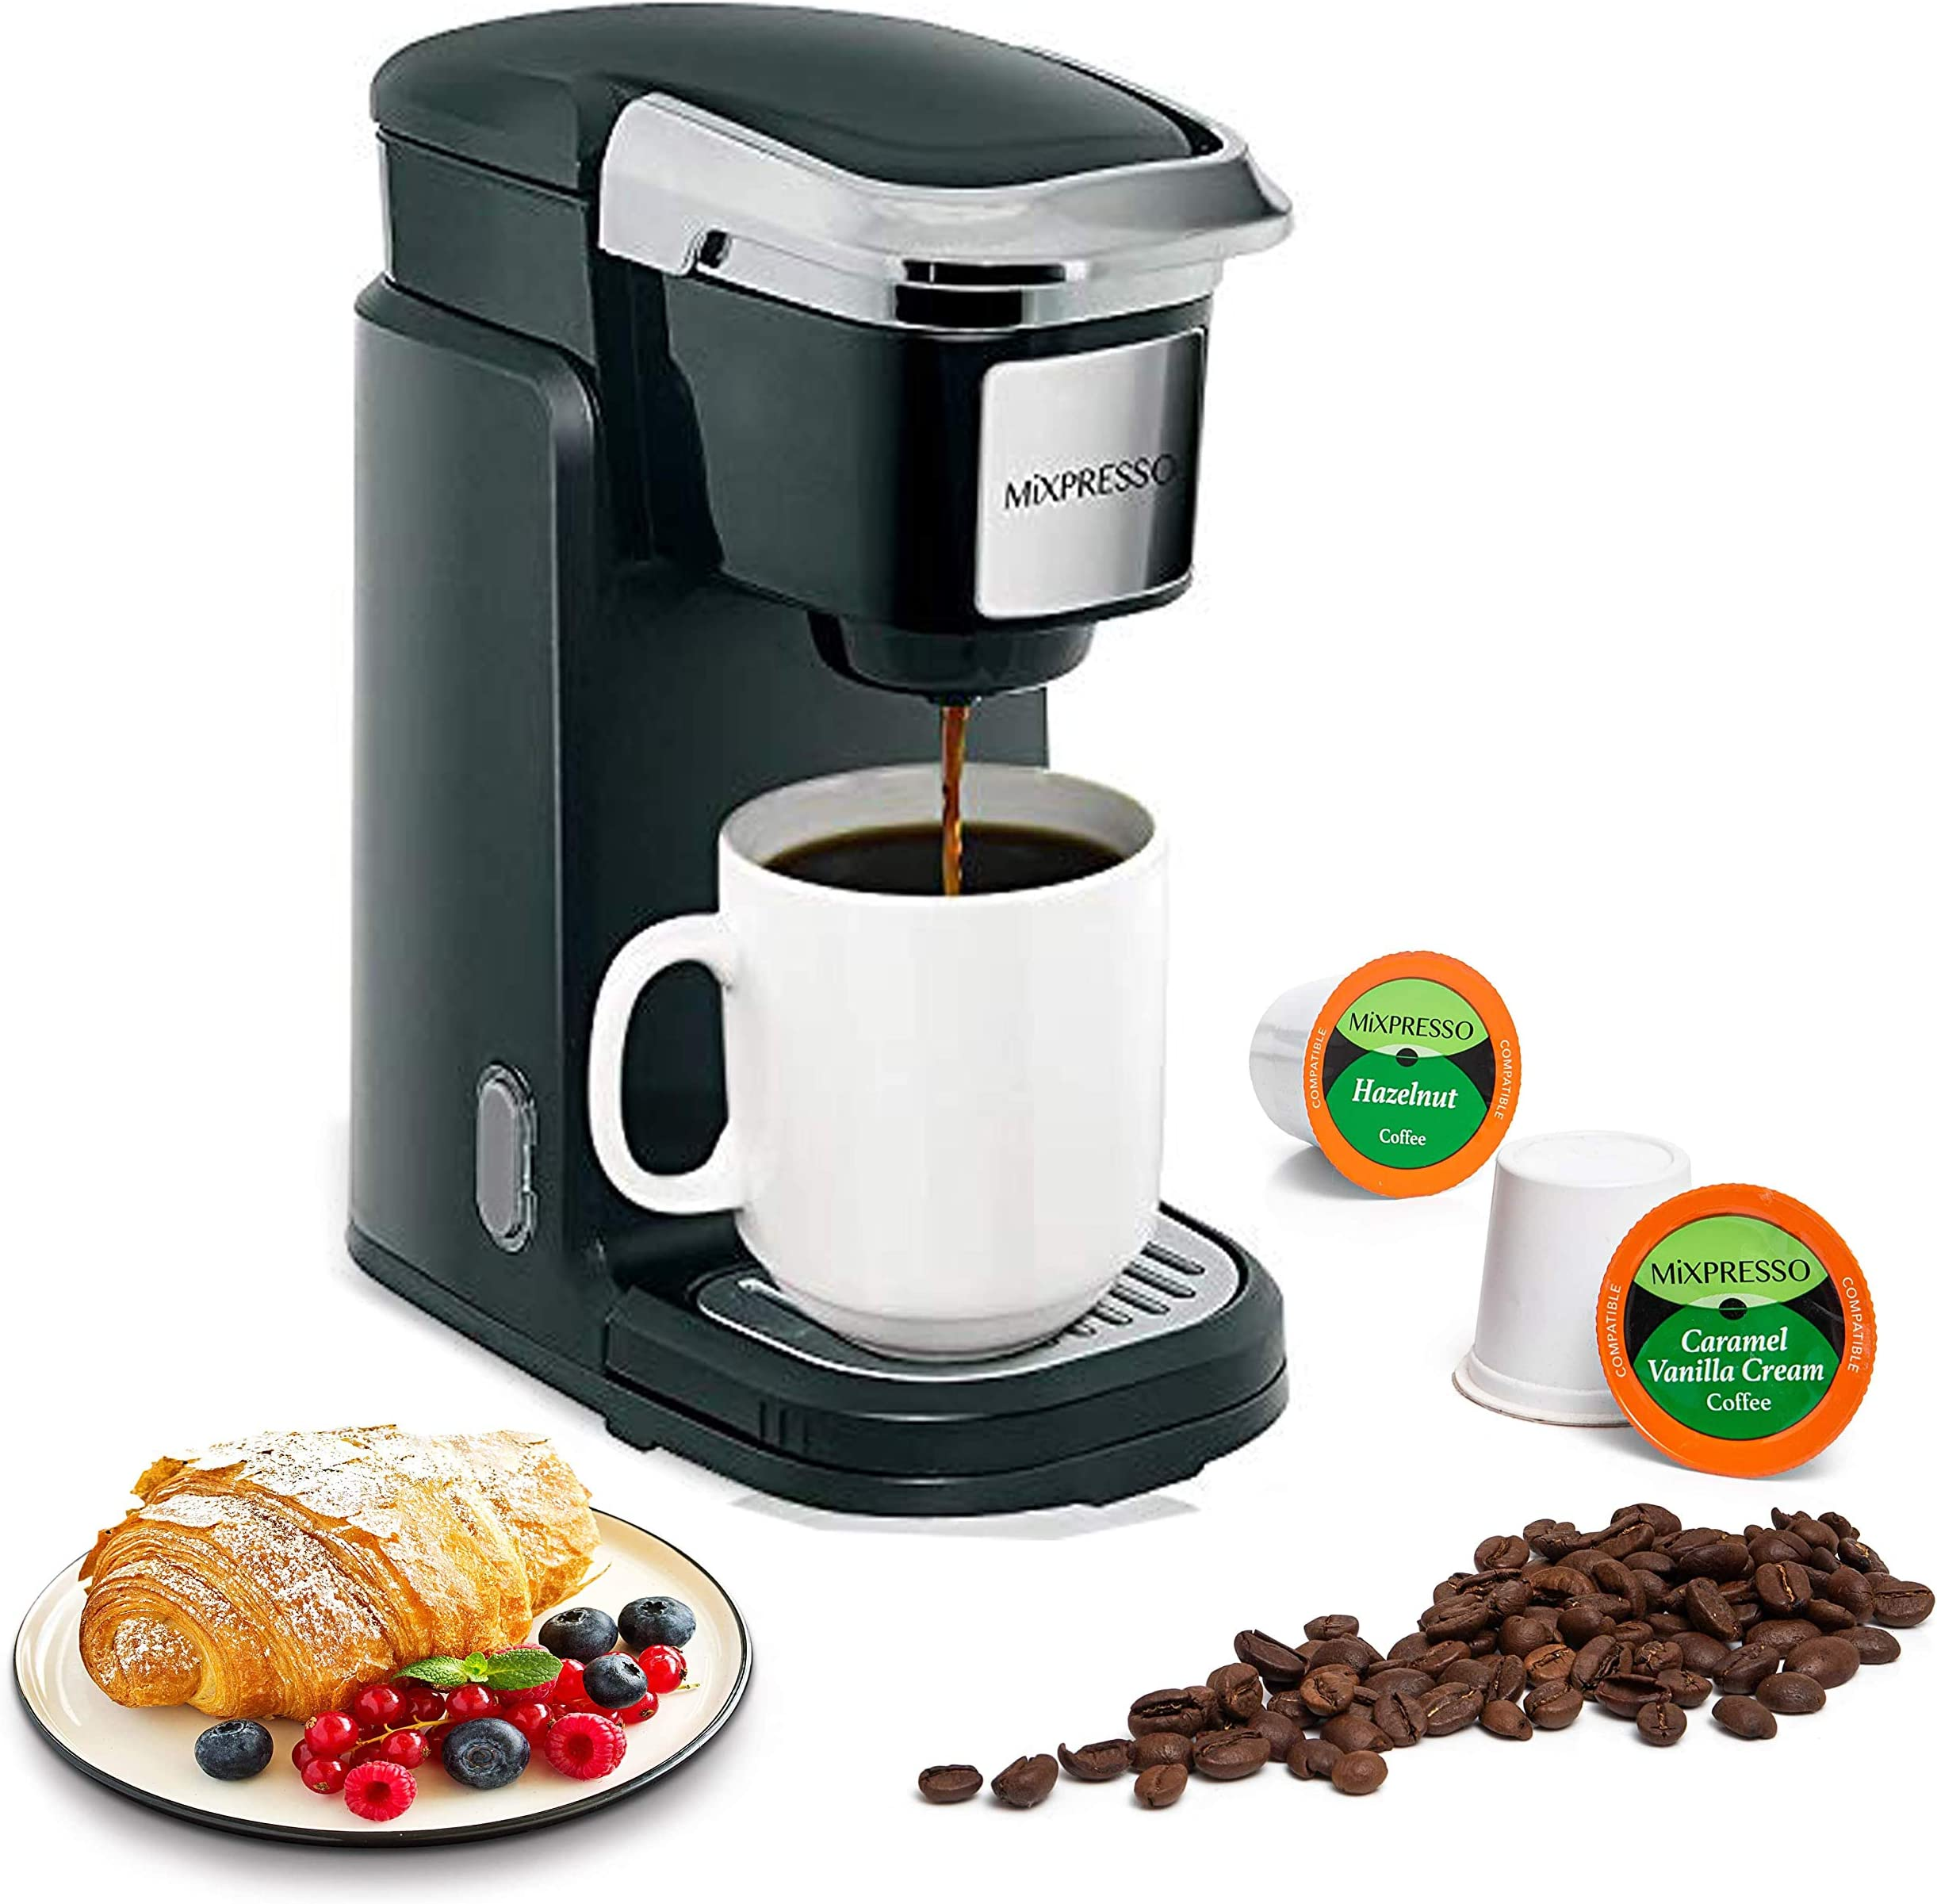 Mixpresso Single Cup Coffee Maker   Personal, Single Serve Coffee Brewer Machine, Compatible with Single-Cups   Quick Brew Technology, Programmable Features, One Touch Function (Black)